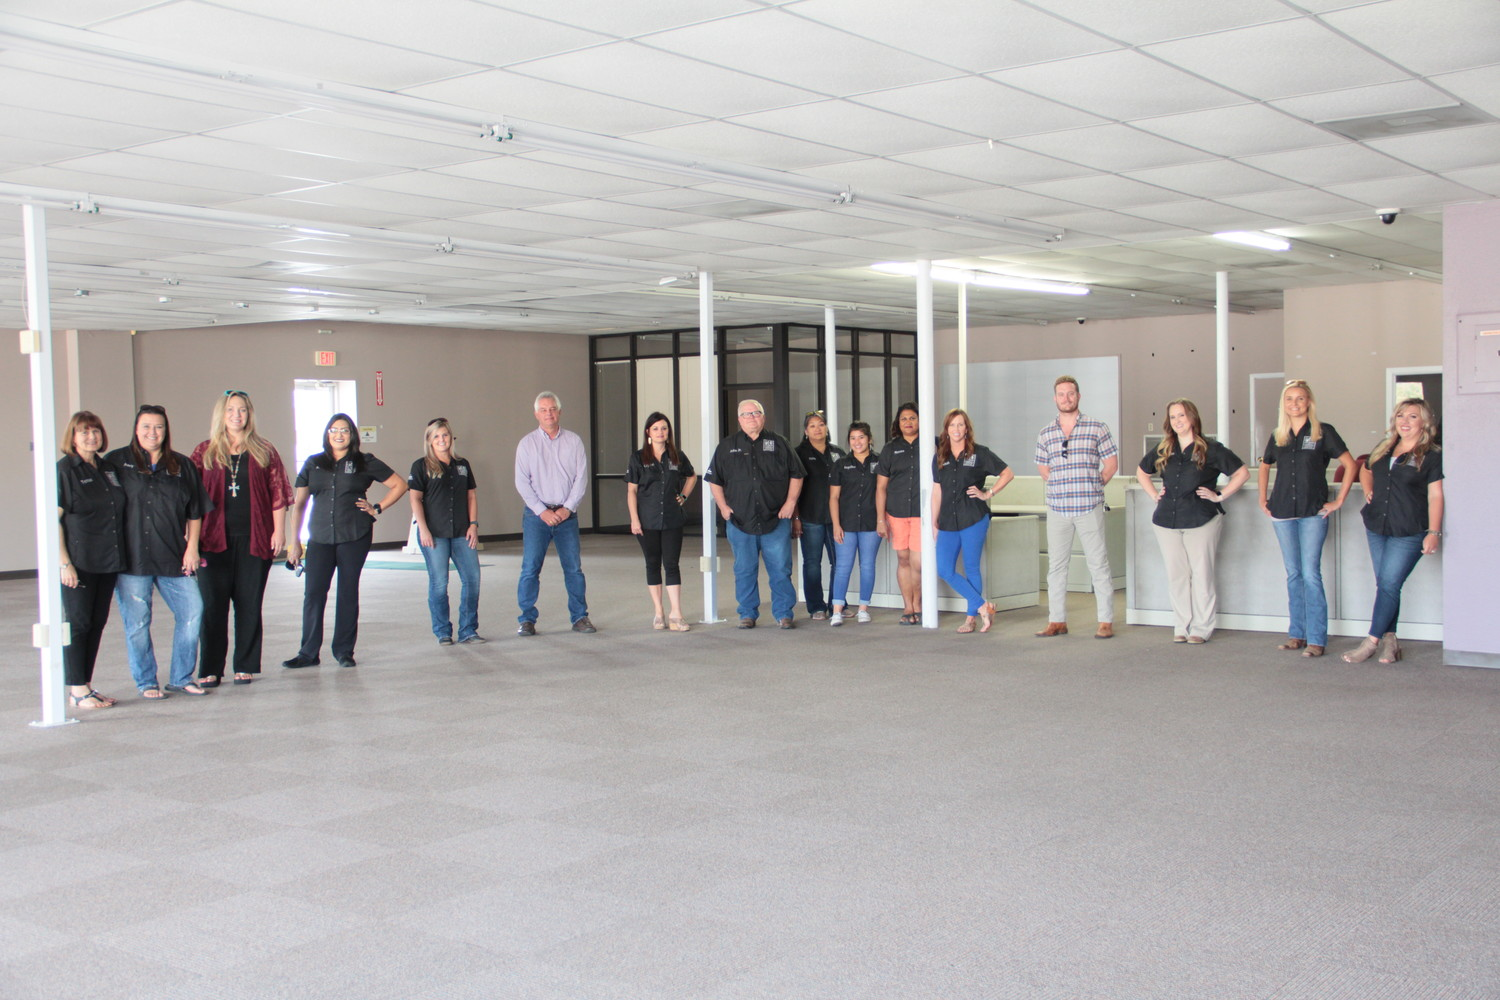 Members of the Gonzales Chamber of Commerce and Agriculture board of directors stand inside their future home downtown. The spacious building is on Texas Heroes Square across from the flag pole in the former GVEC building, which should make it an easy-to-find location for visitors.